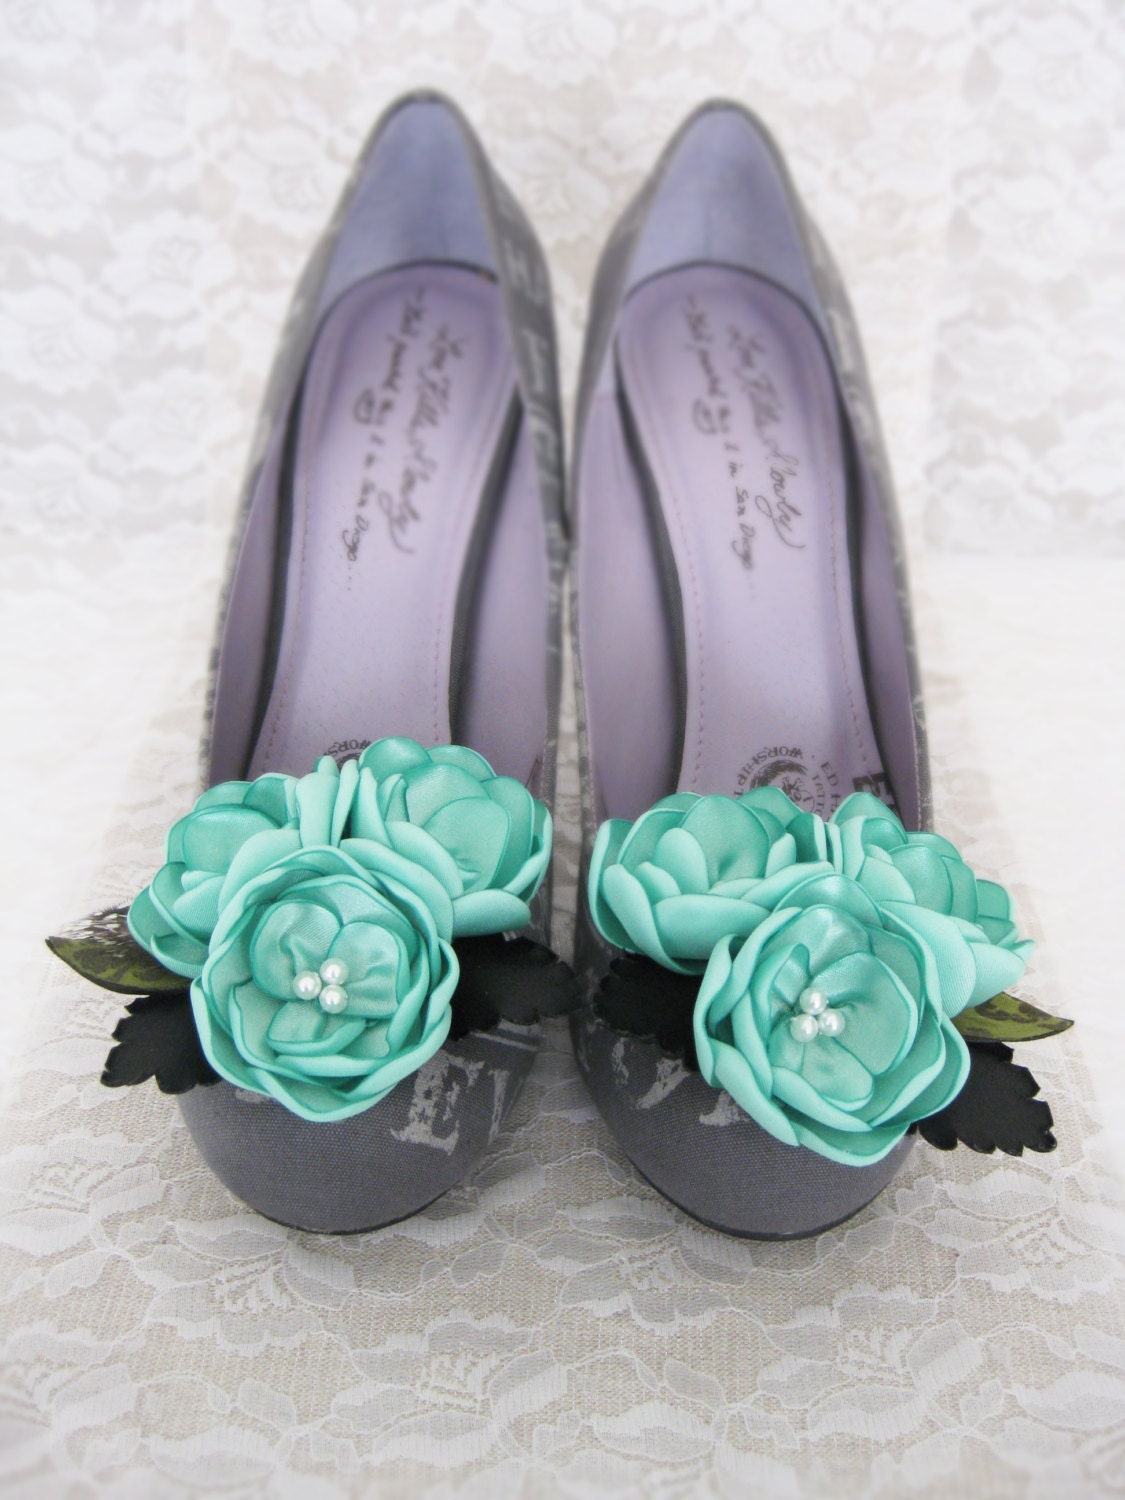 Flower Shoe Clips. Mint Shoe Clips. Mint Flower Shoe Clips. Mint Flower Accessory. Wedding Accessory. Women Accessory.